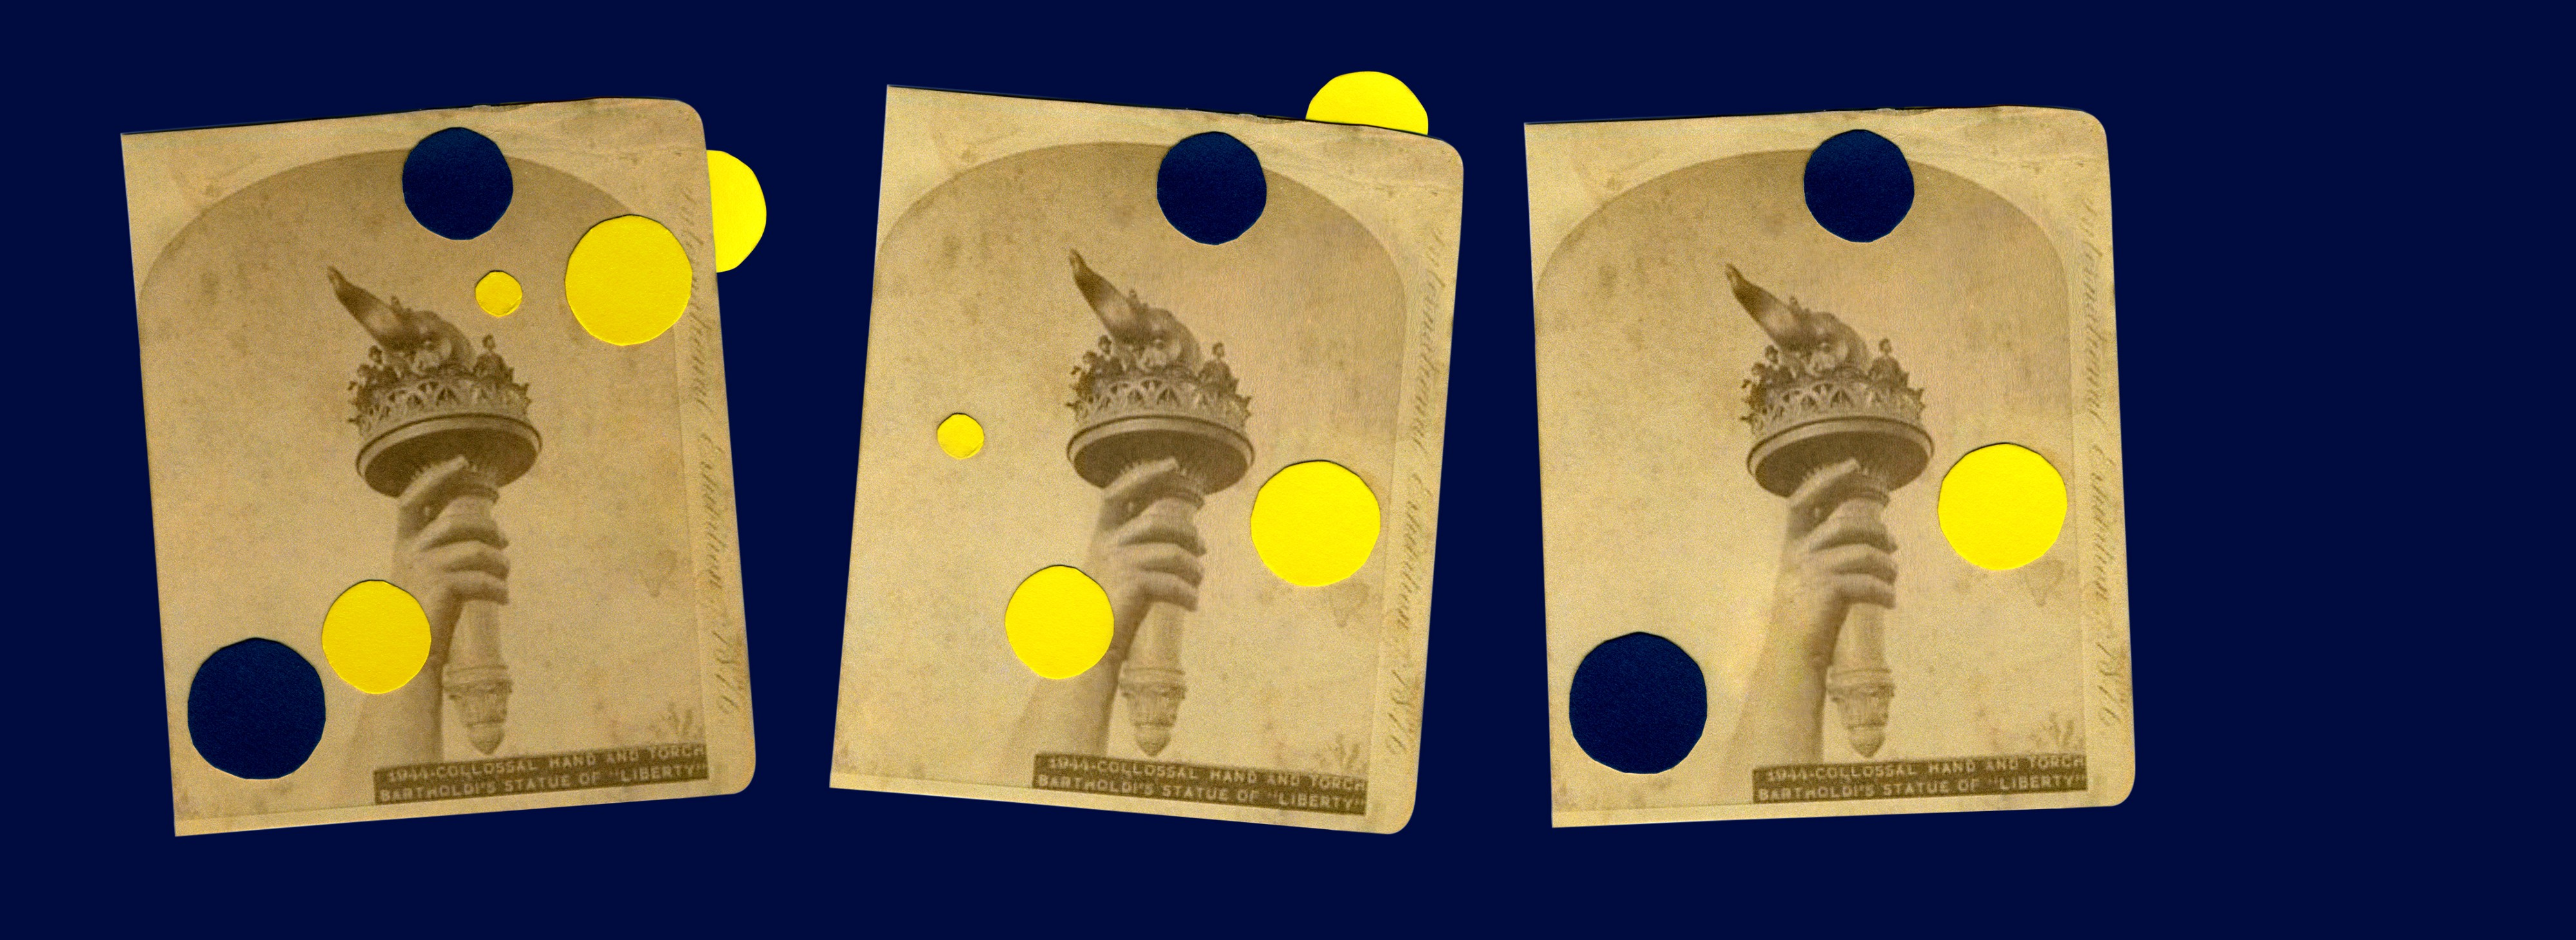 Collage with three repeated vintage photos of the Statue of Liberty's torch